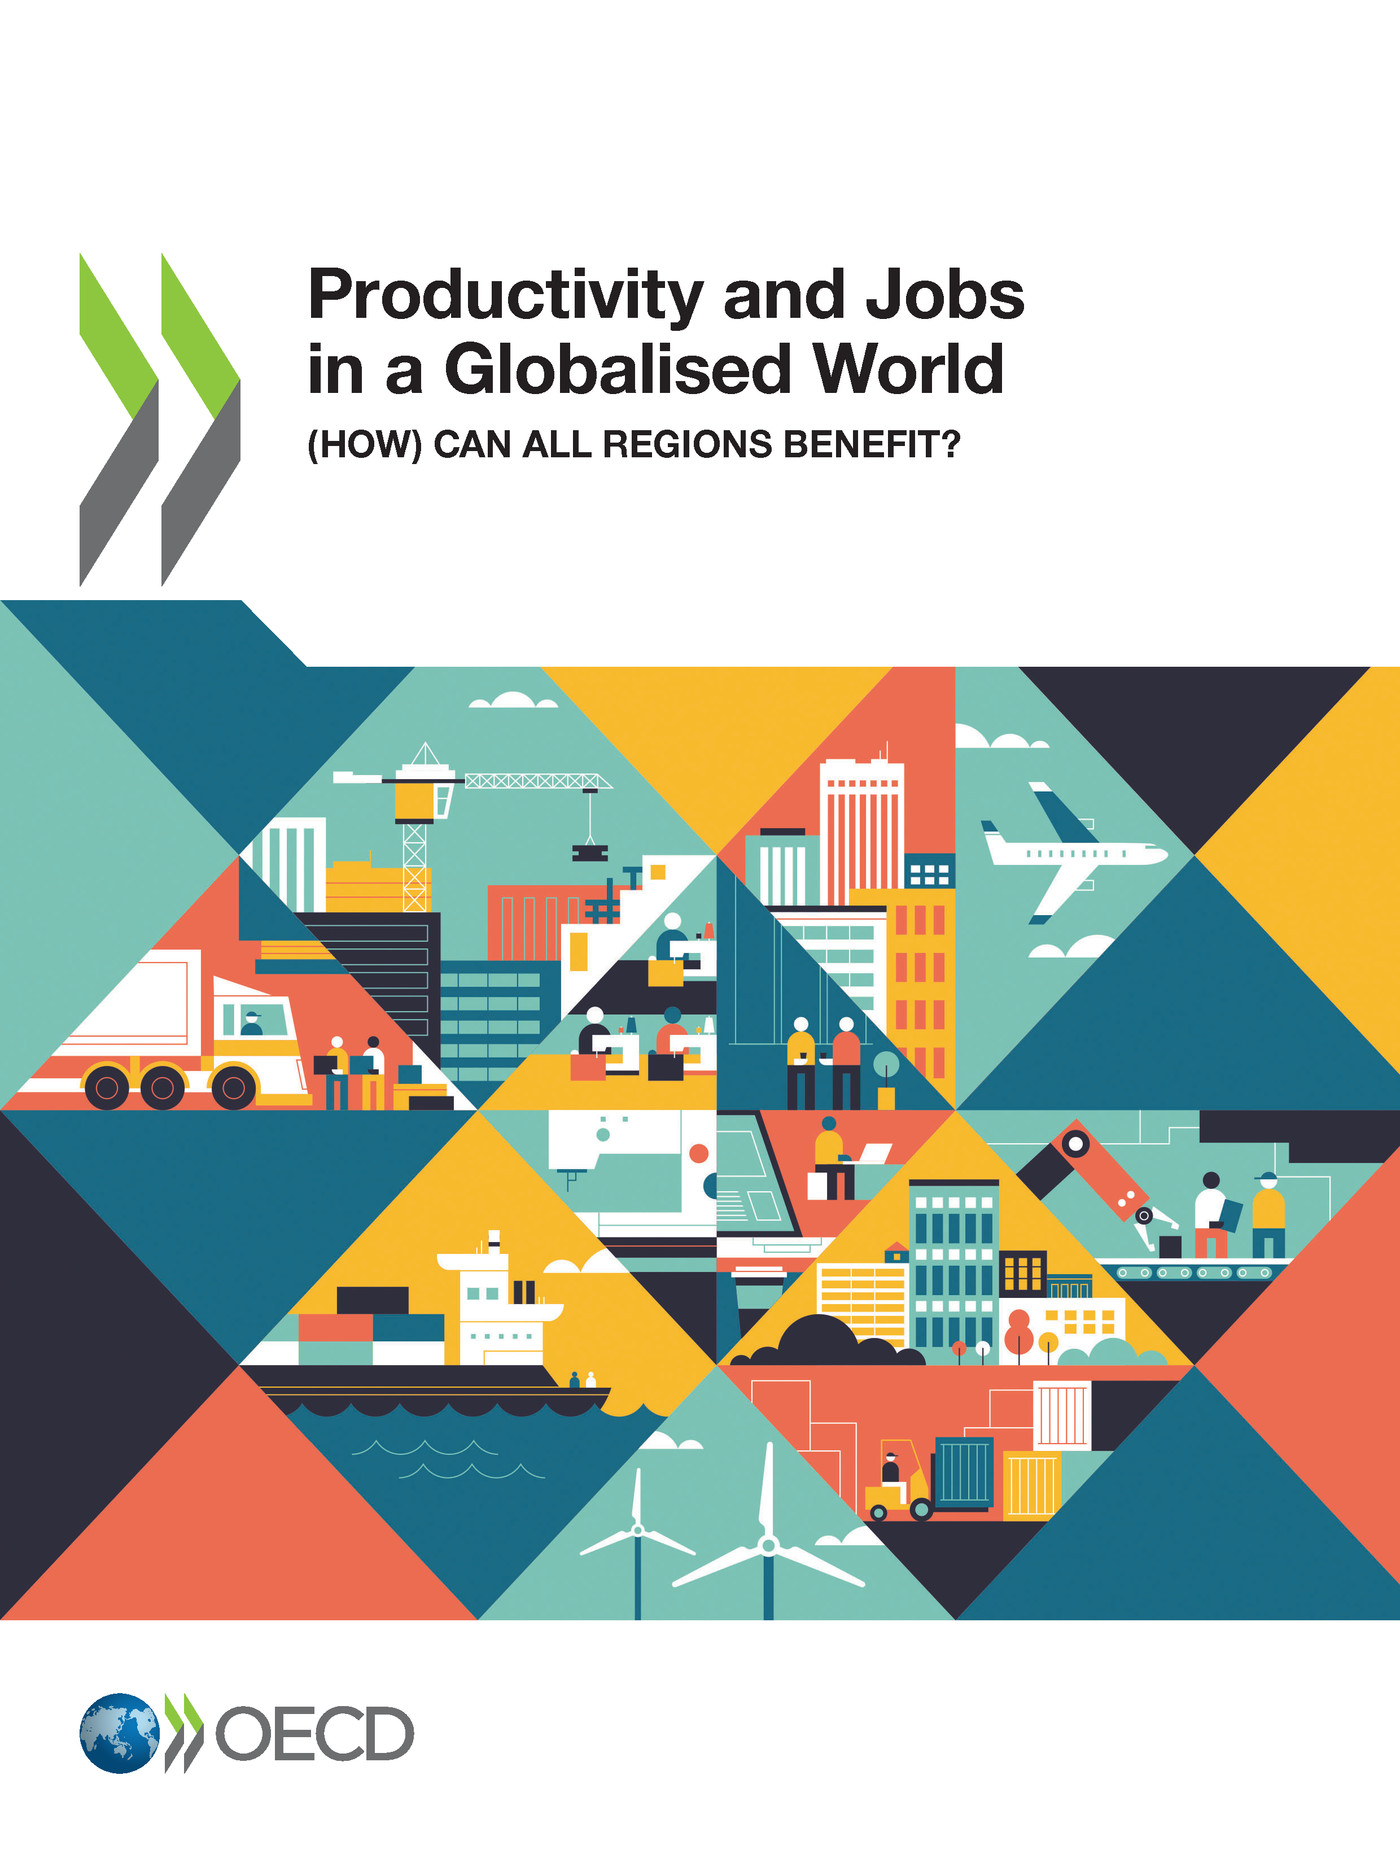 Productivity and Jobs in a Globalised World De  Collectif - OCDE / OECD